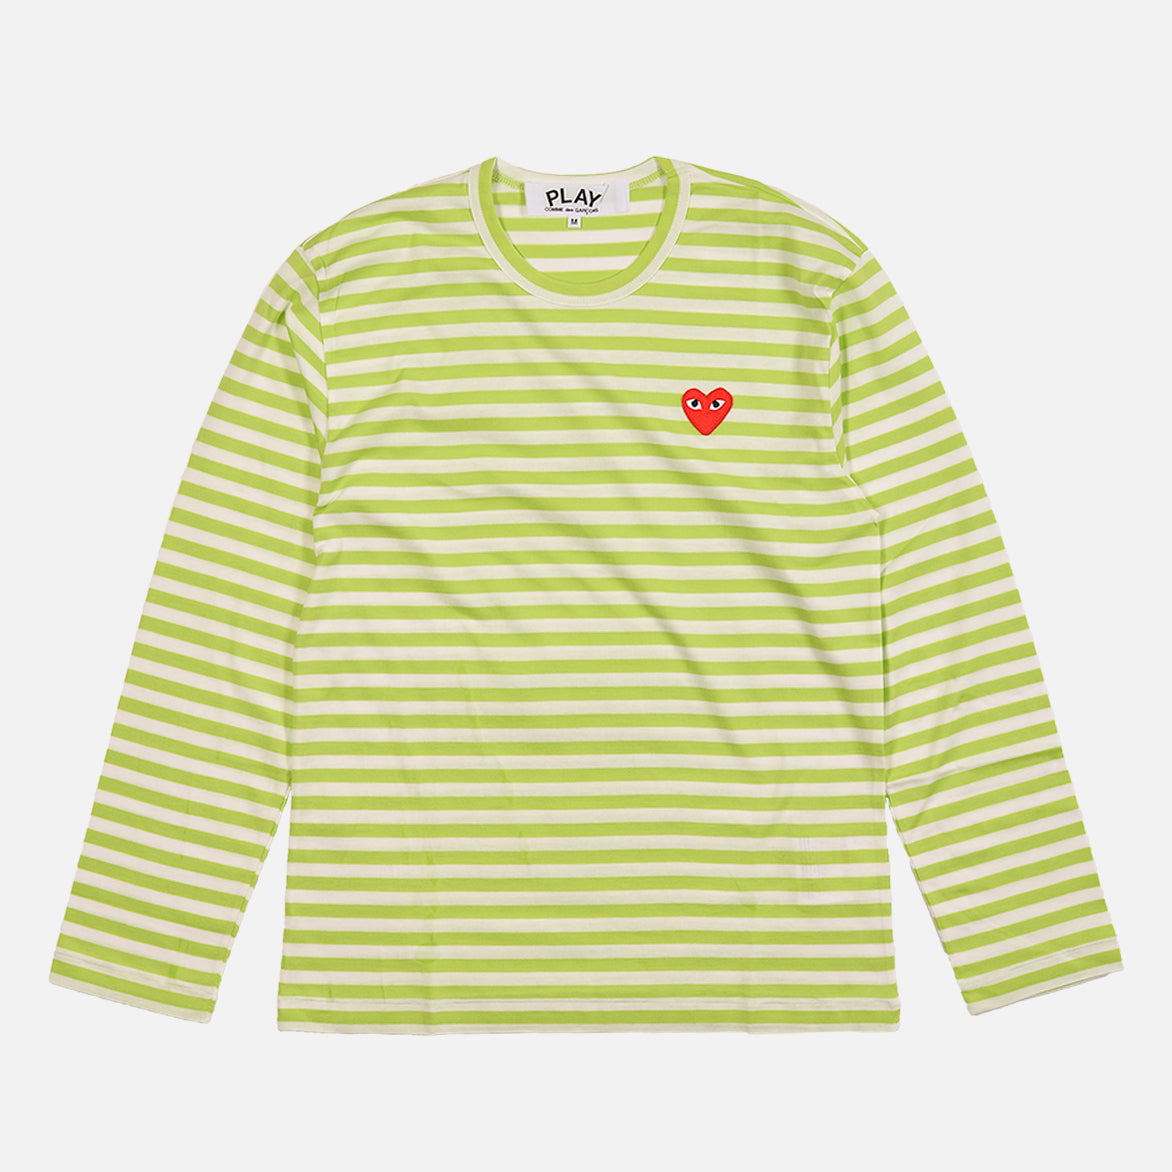 STRIPED HEART LOGO LS TEE - GREEN / WHITE